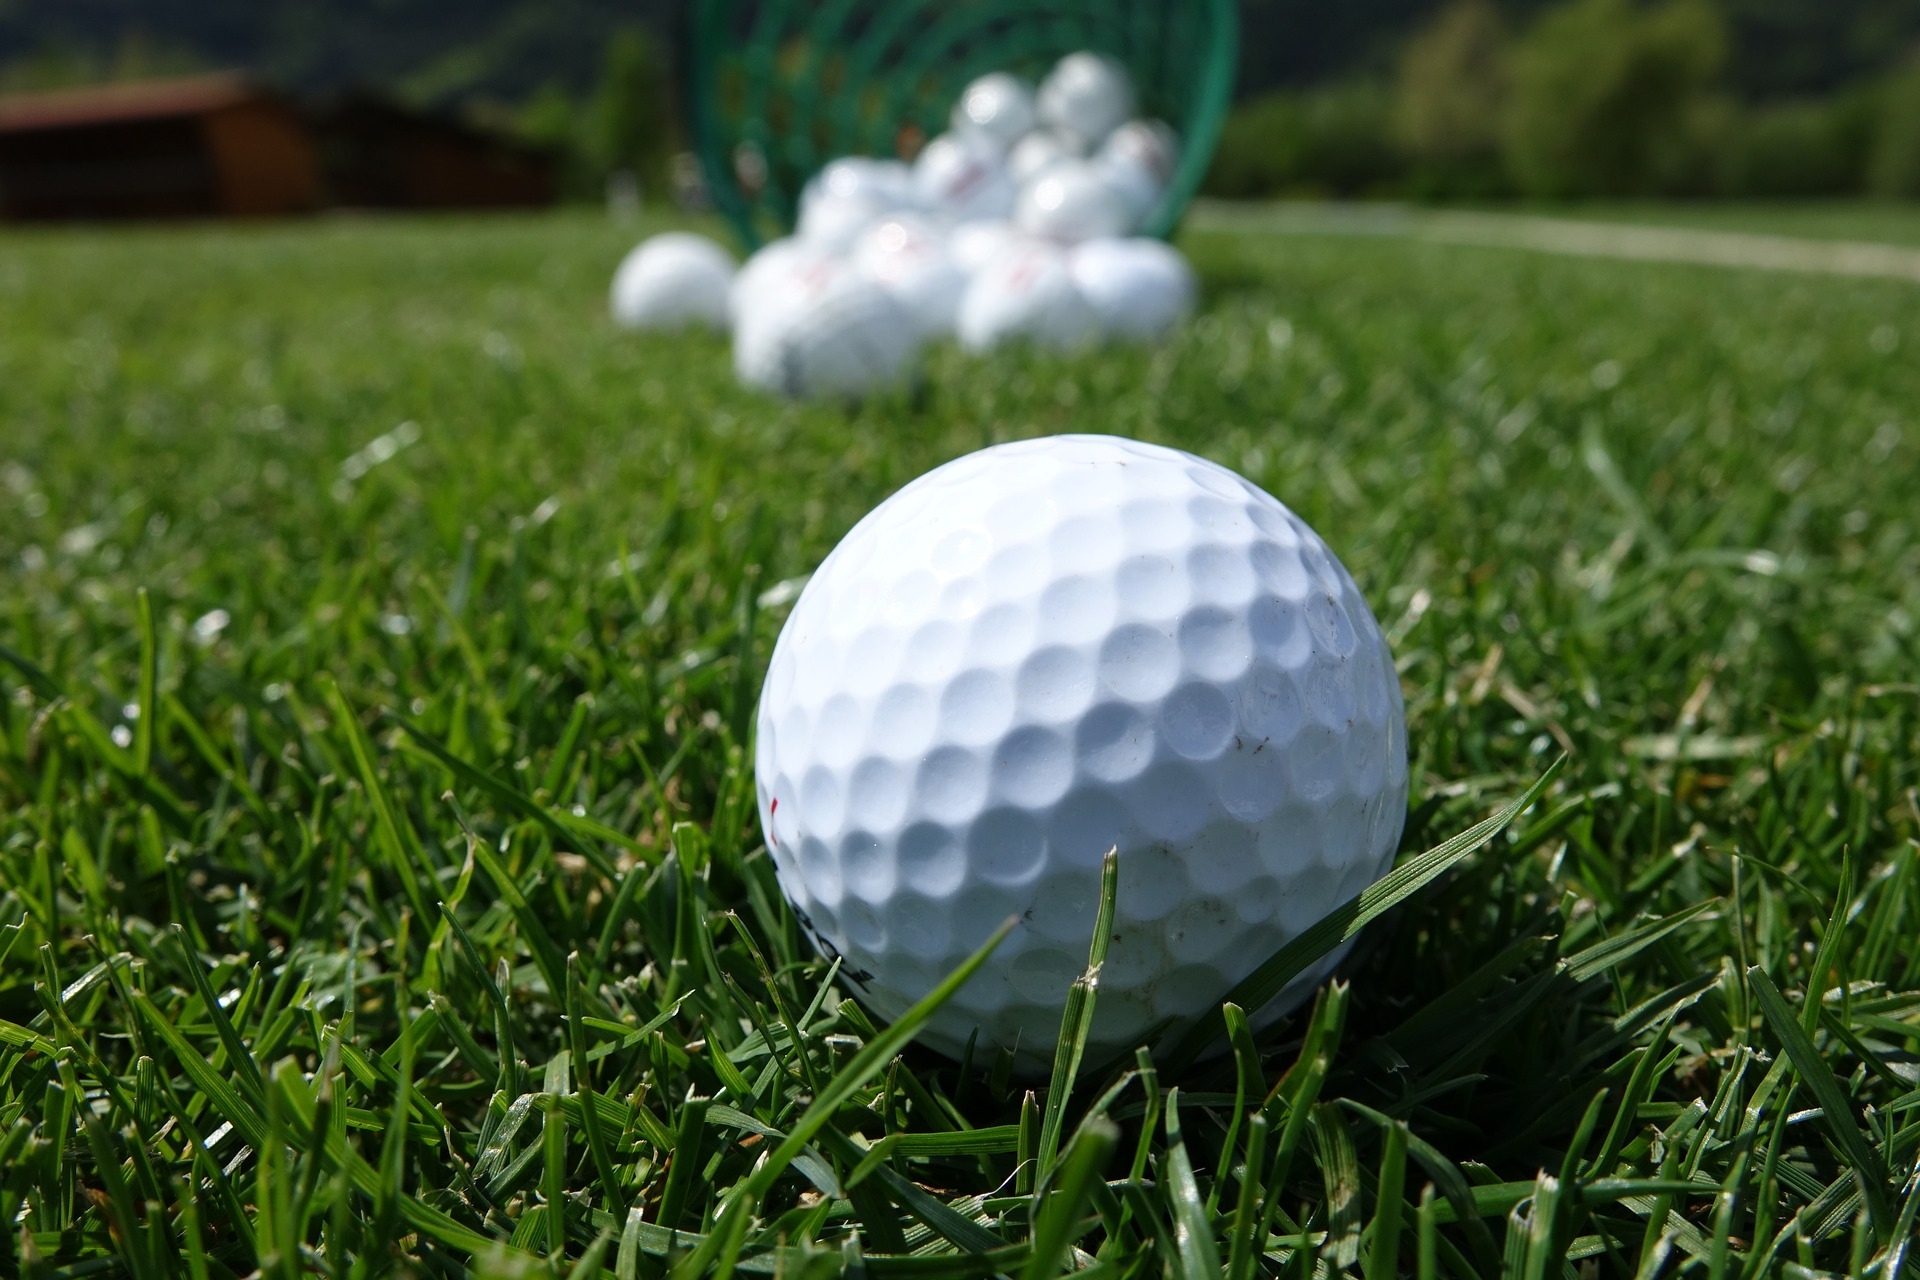 What are the Best Golf Balls for High Handicappers?